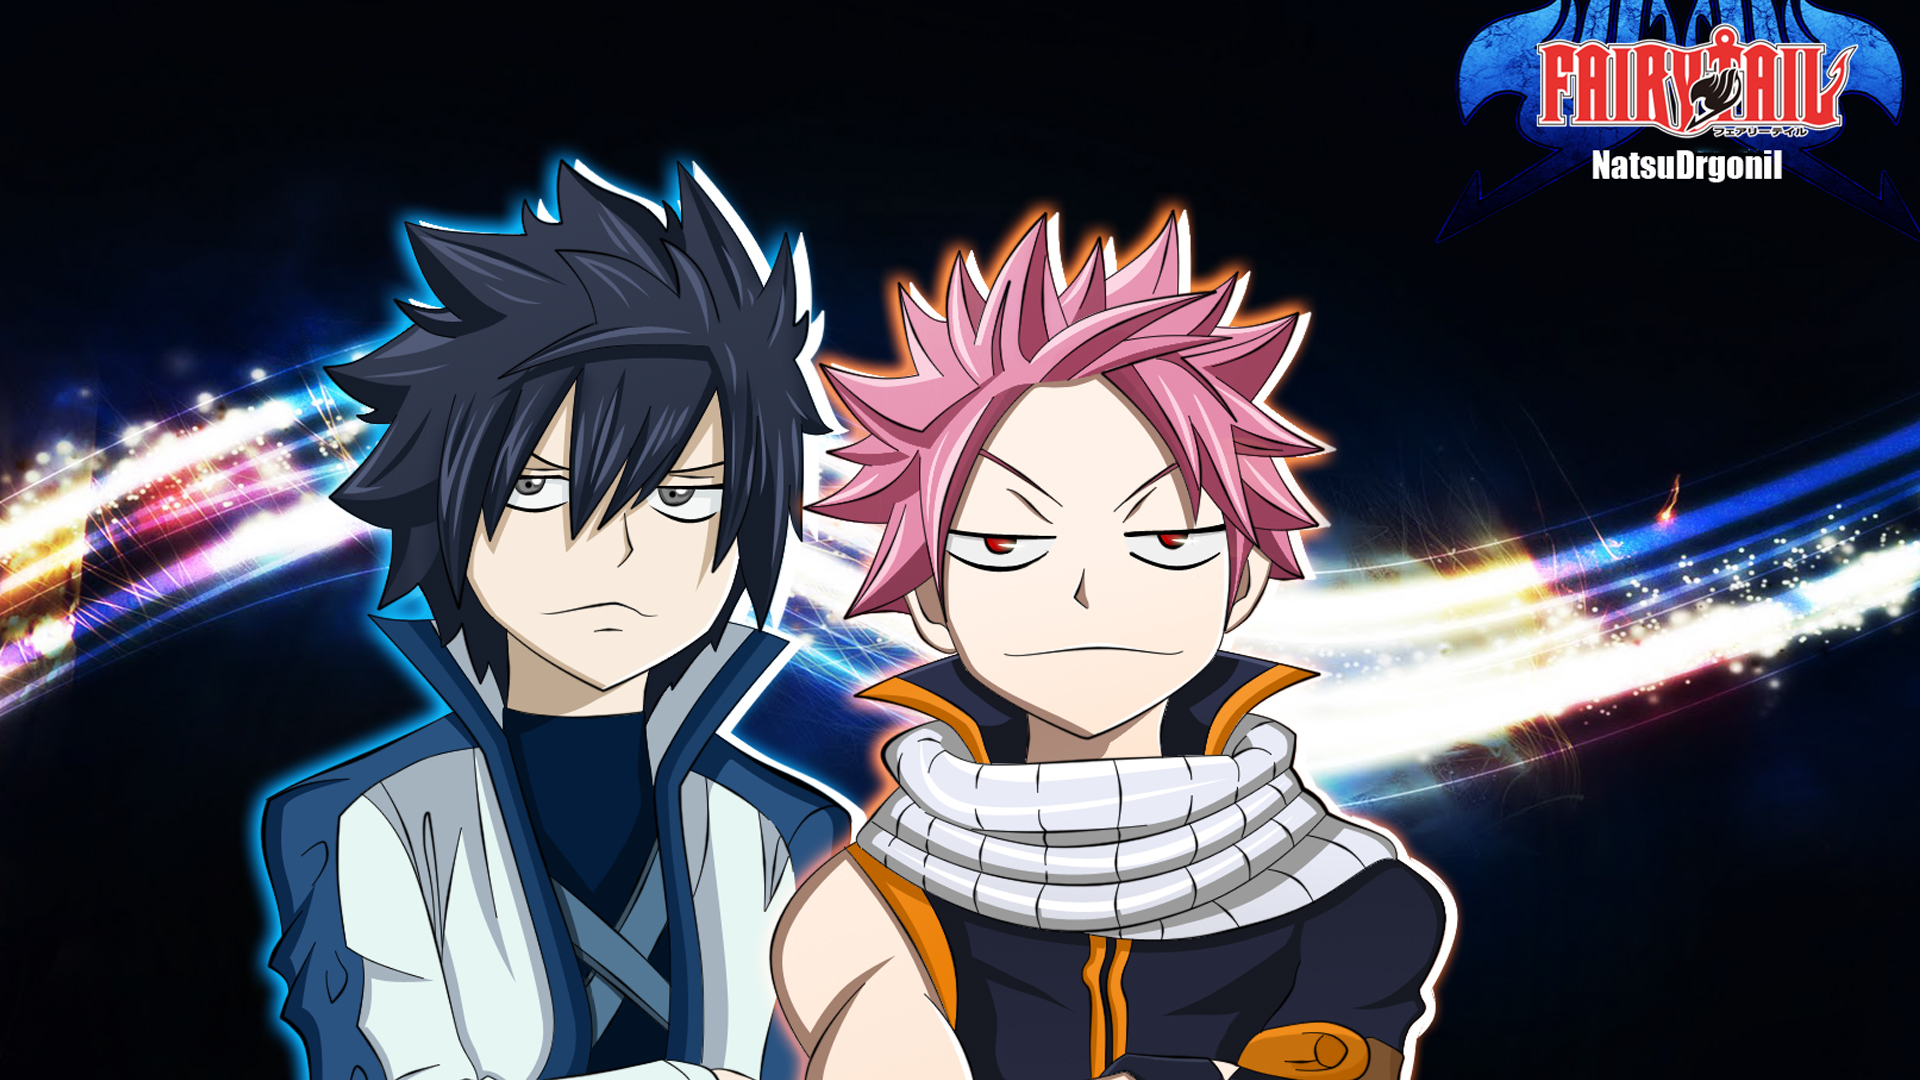 gray fullbuster and natsu dragneel fairy tail anime hd wallpaper full 1920x1080